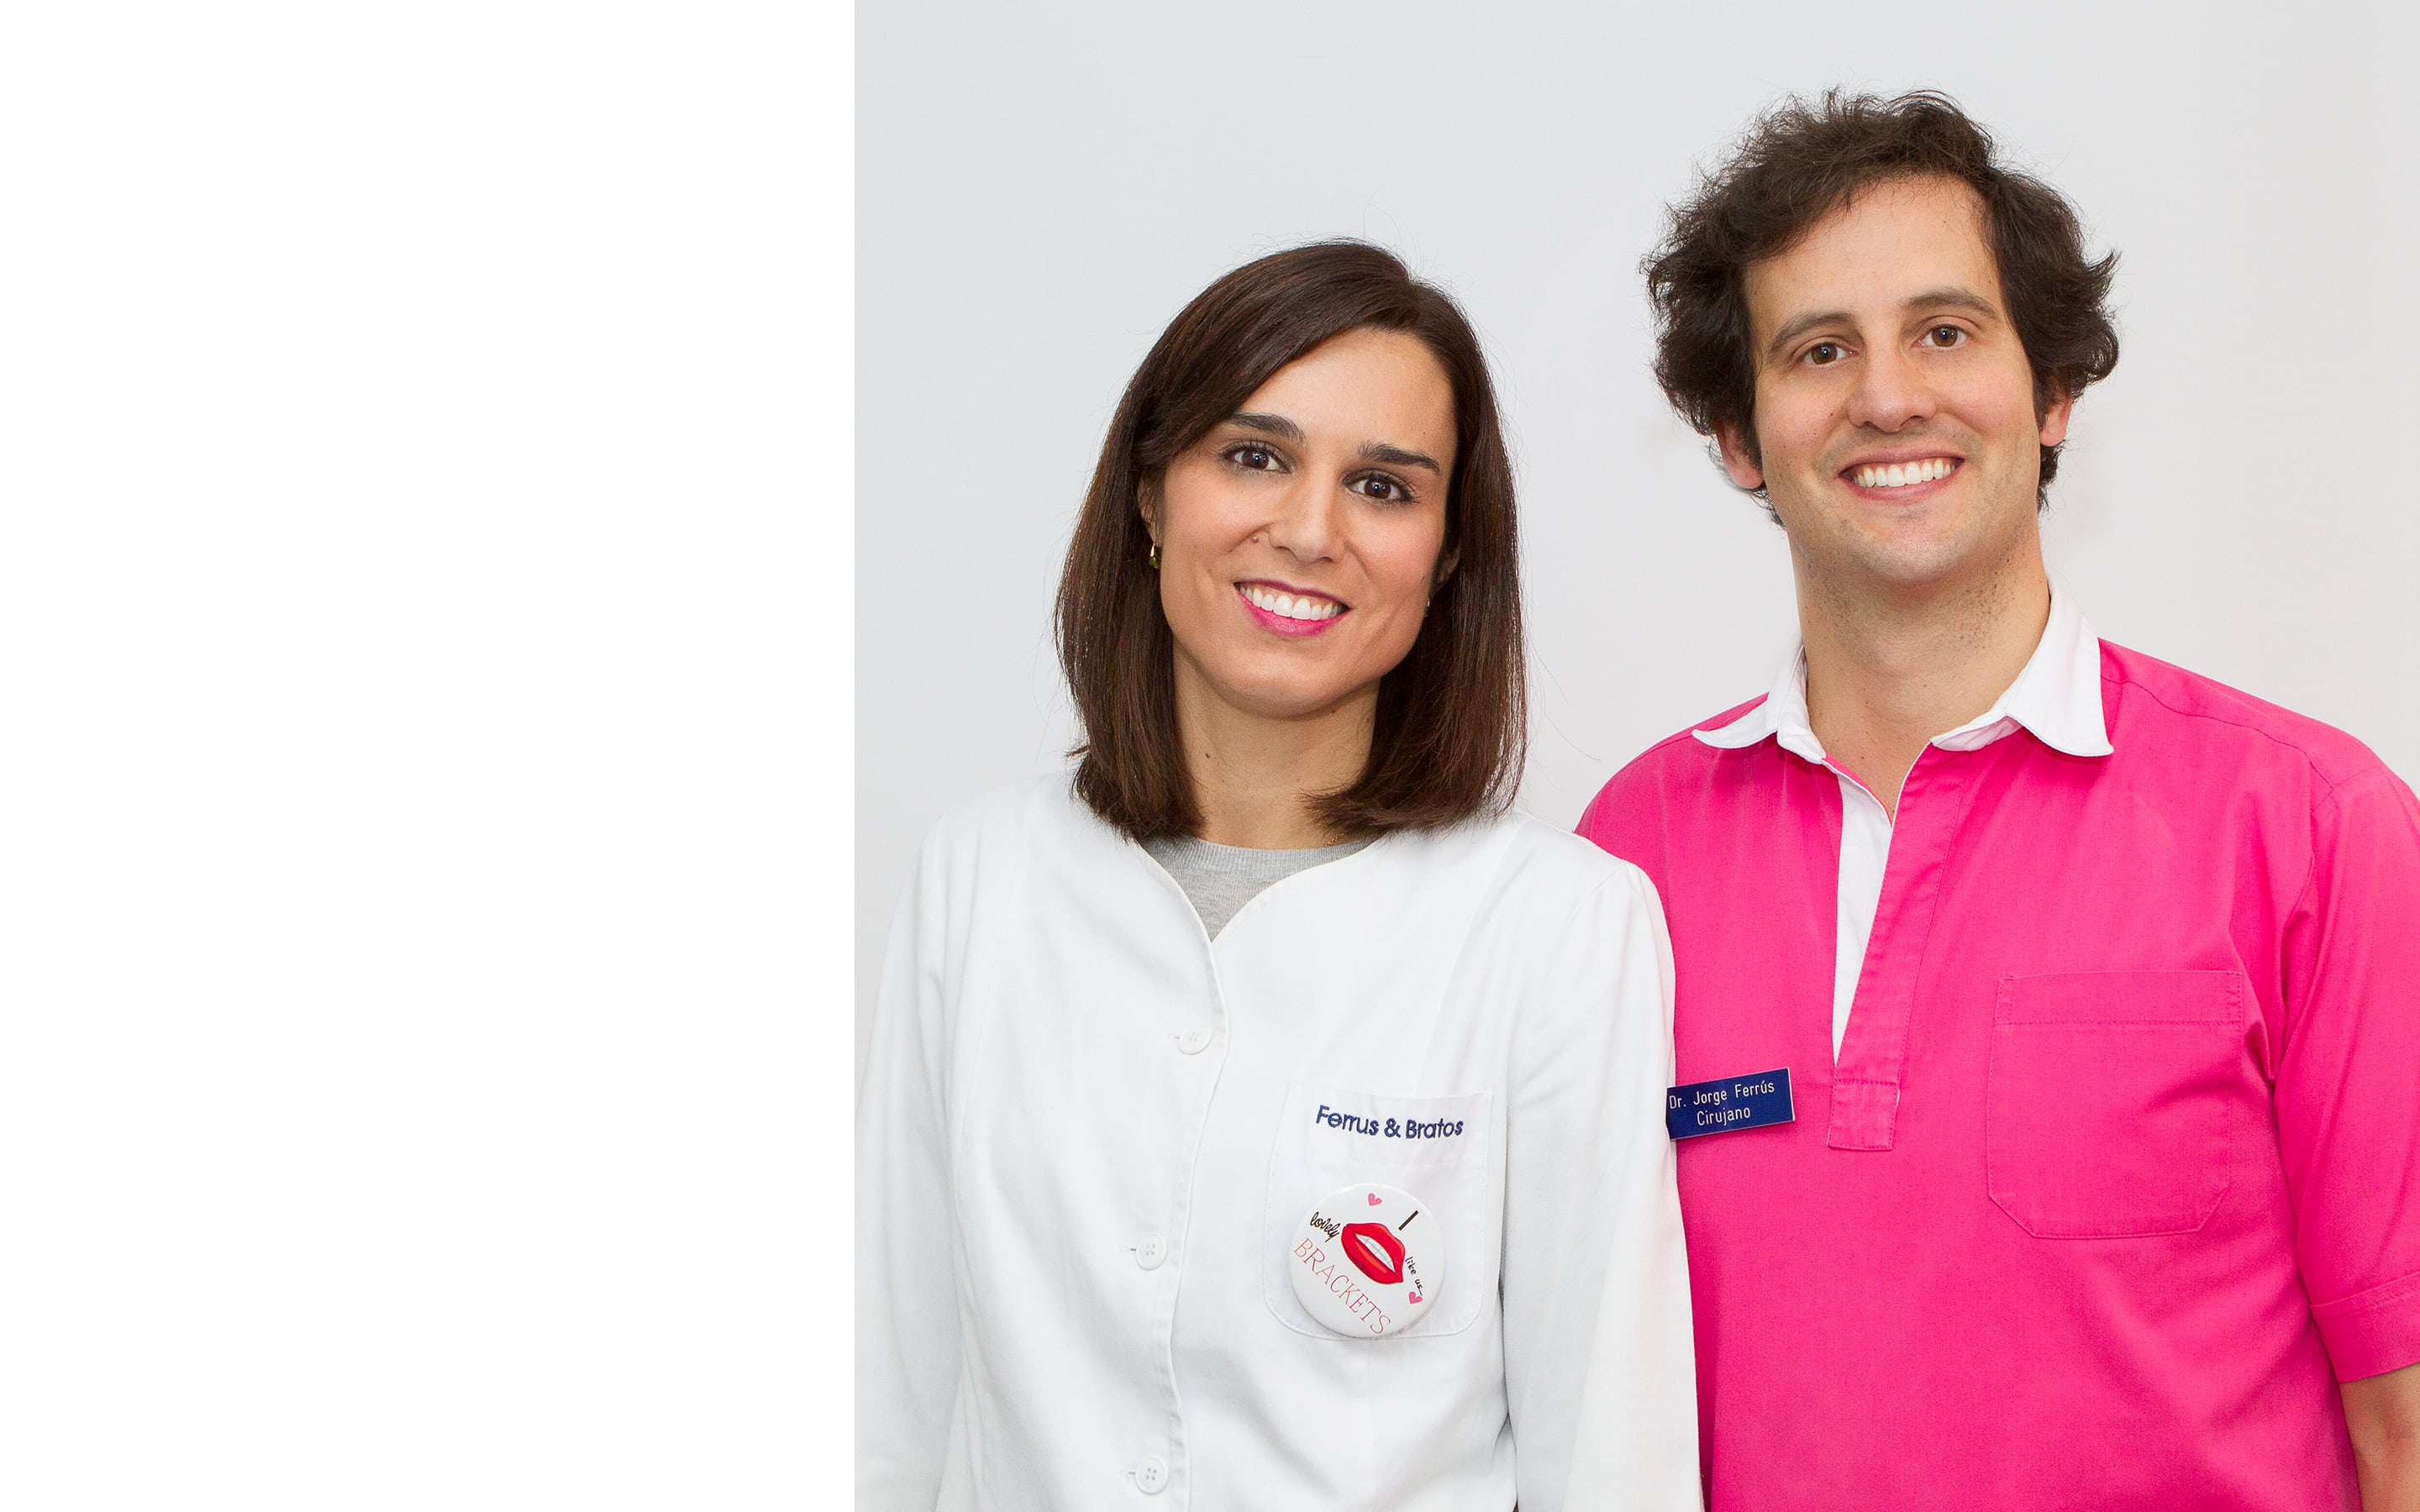 Clínica dental de tratamientos multidisciplinares en Madrid